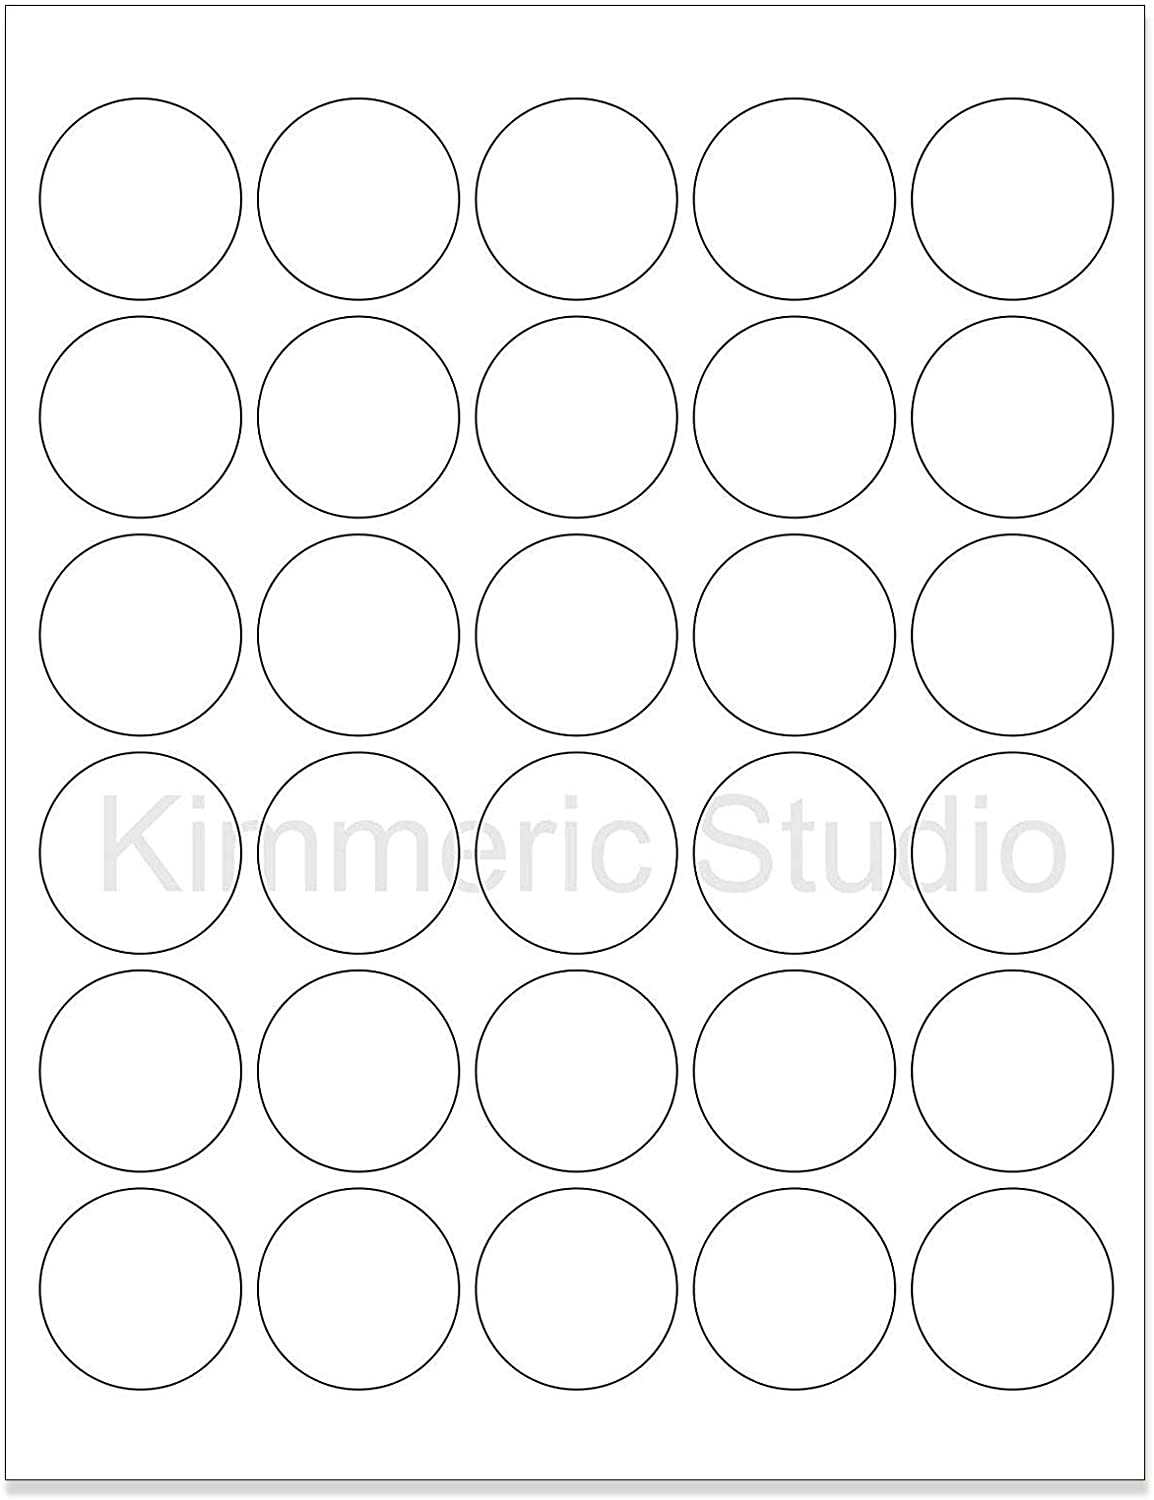 (6 SHEETS) 180 1-1/2 INCH ROUND CIRCLE WHITE GLOSSY STICKERS FOR LASER PRINTERS. Size: 8-1/2